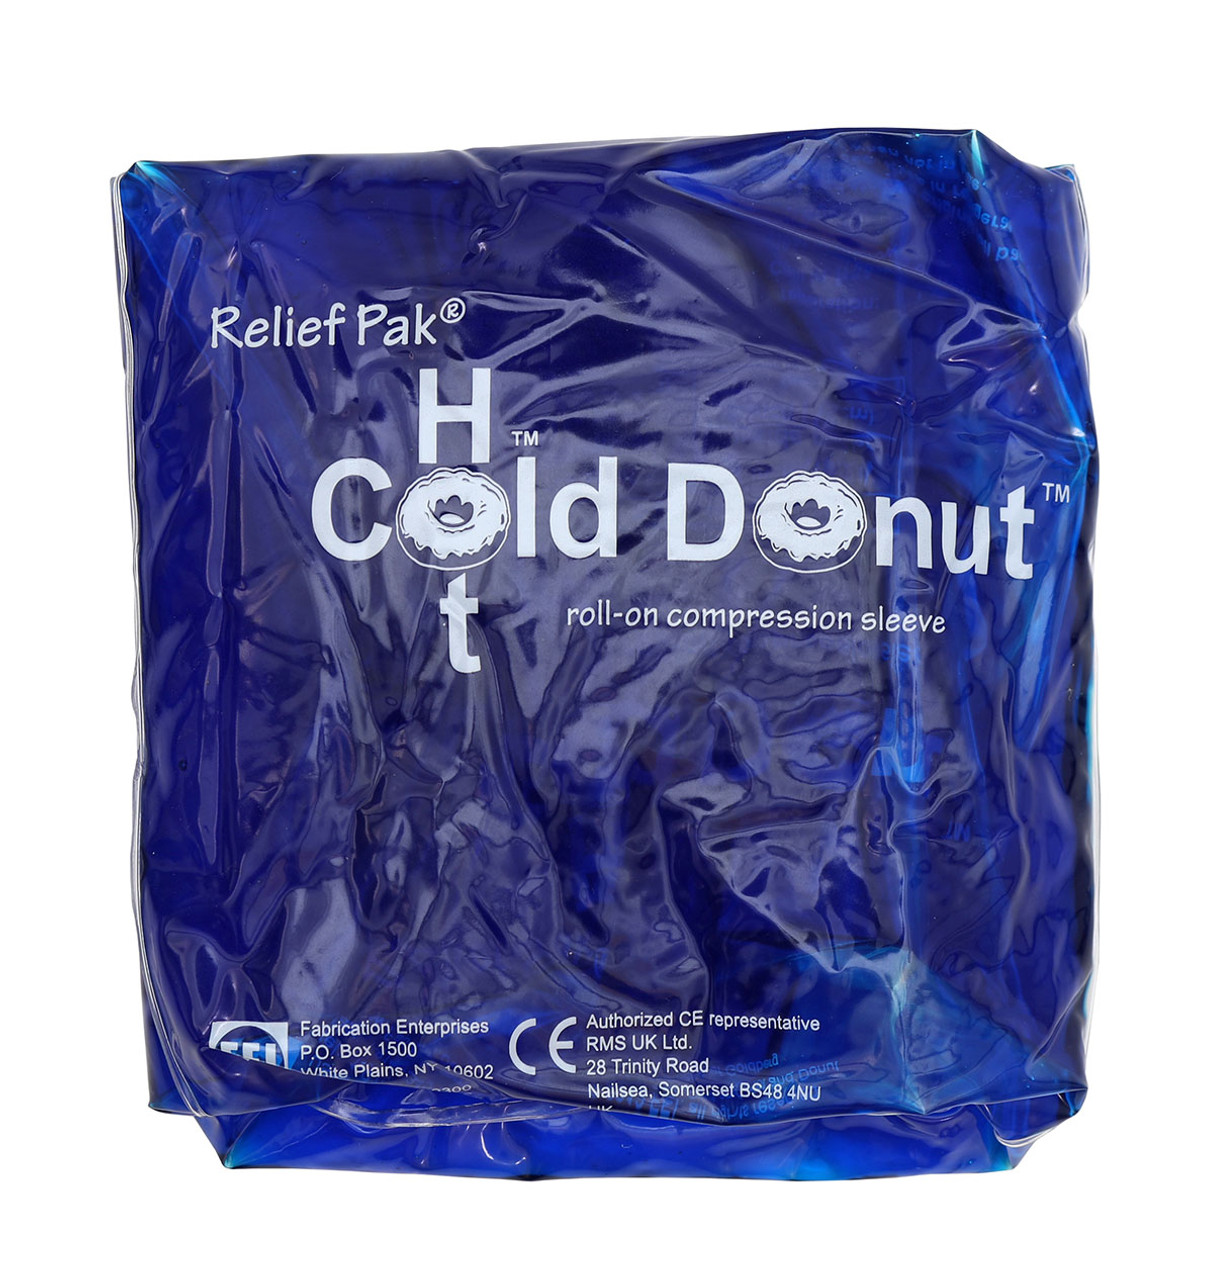 """Relief Pak¨ Cold n' Hot¨ Donut¨ Compression Sleeve - large (for 4-10"""" circumference) - Case of 10"""